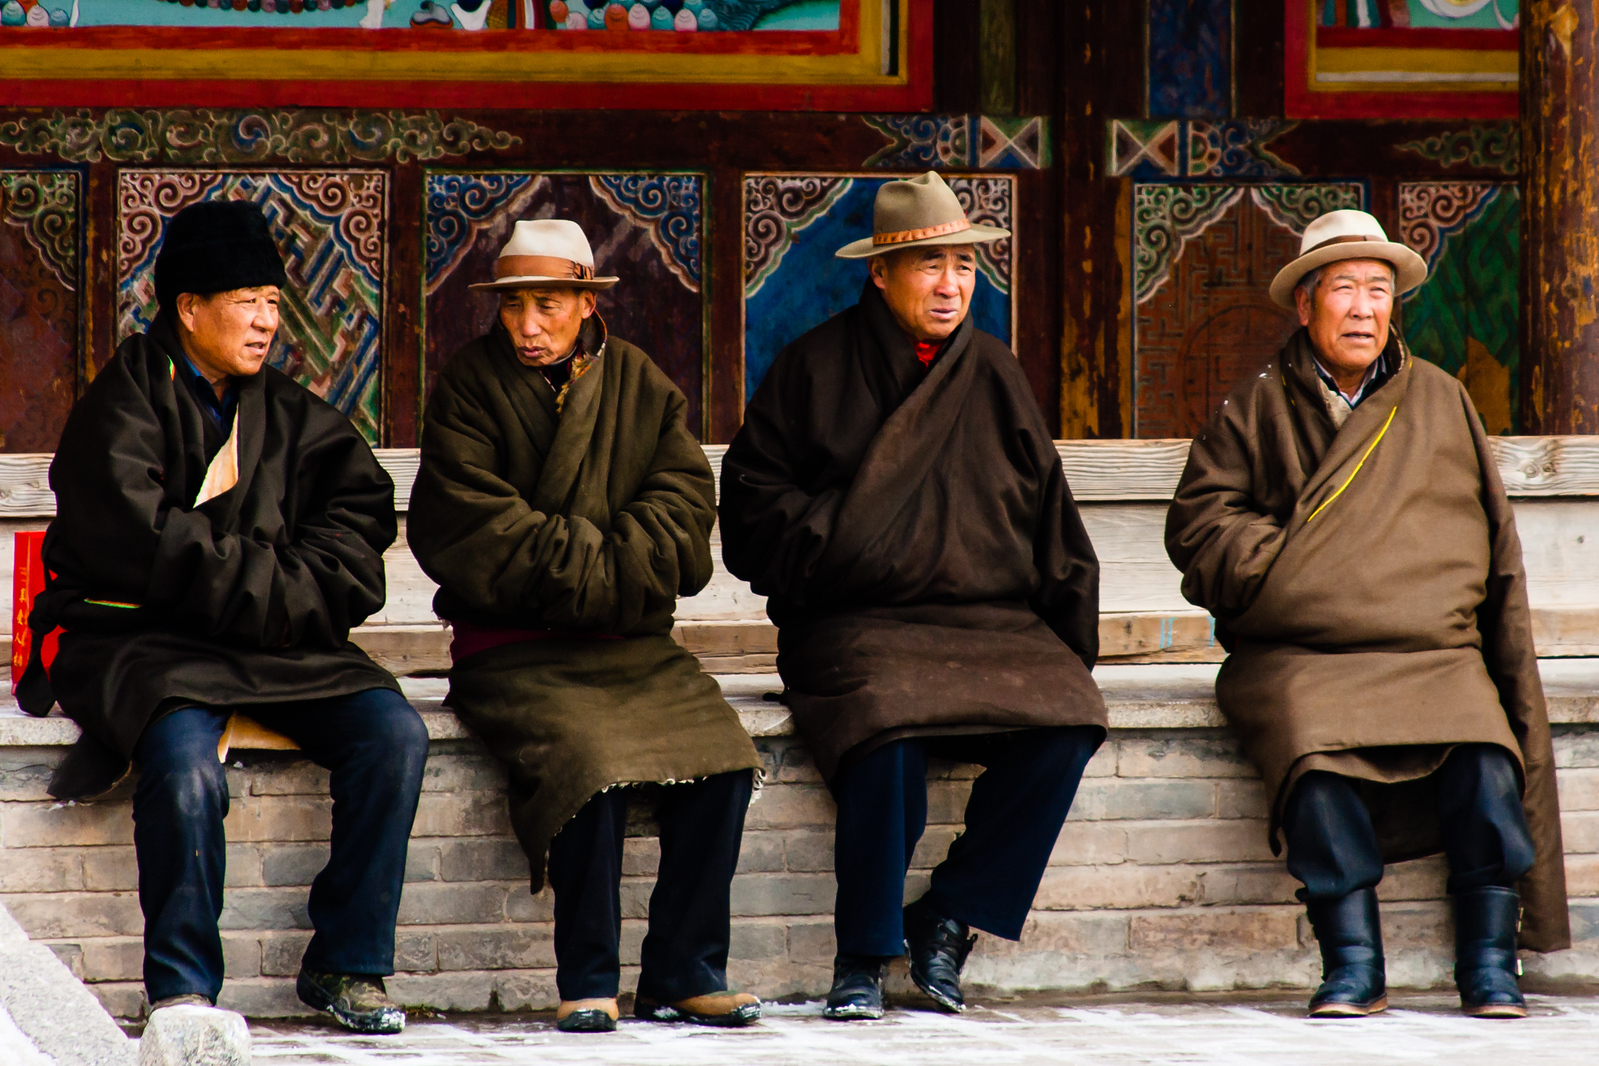 Elderly men dressed in traditional chubas wait patiently for the commencement of the Butter Tea Ceremony.